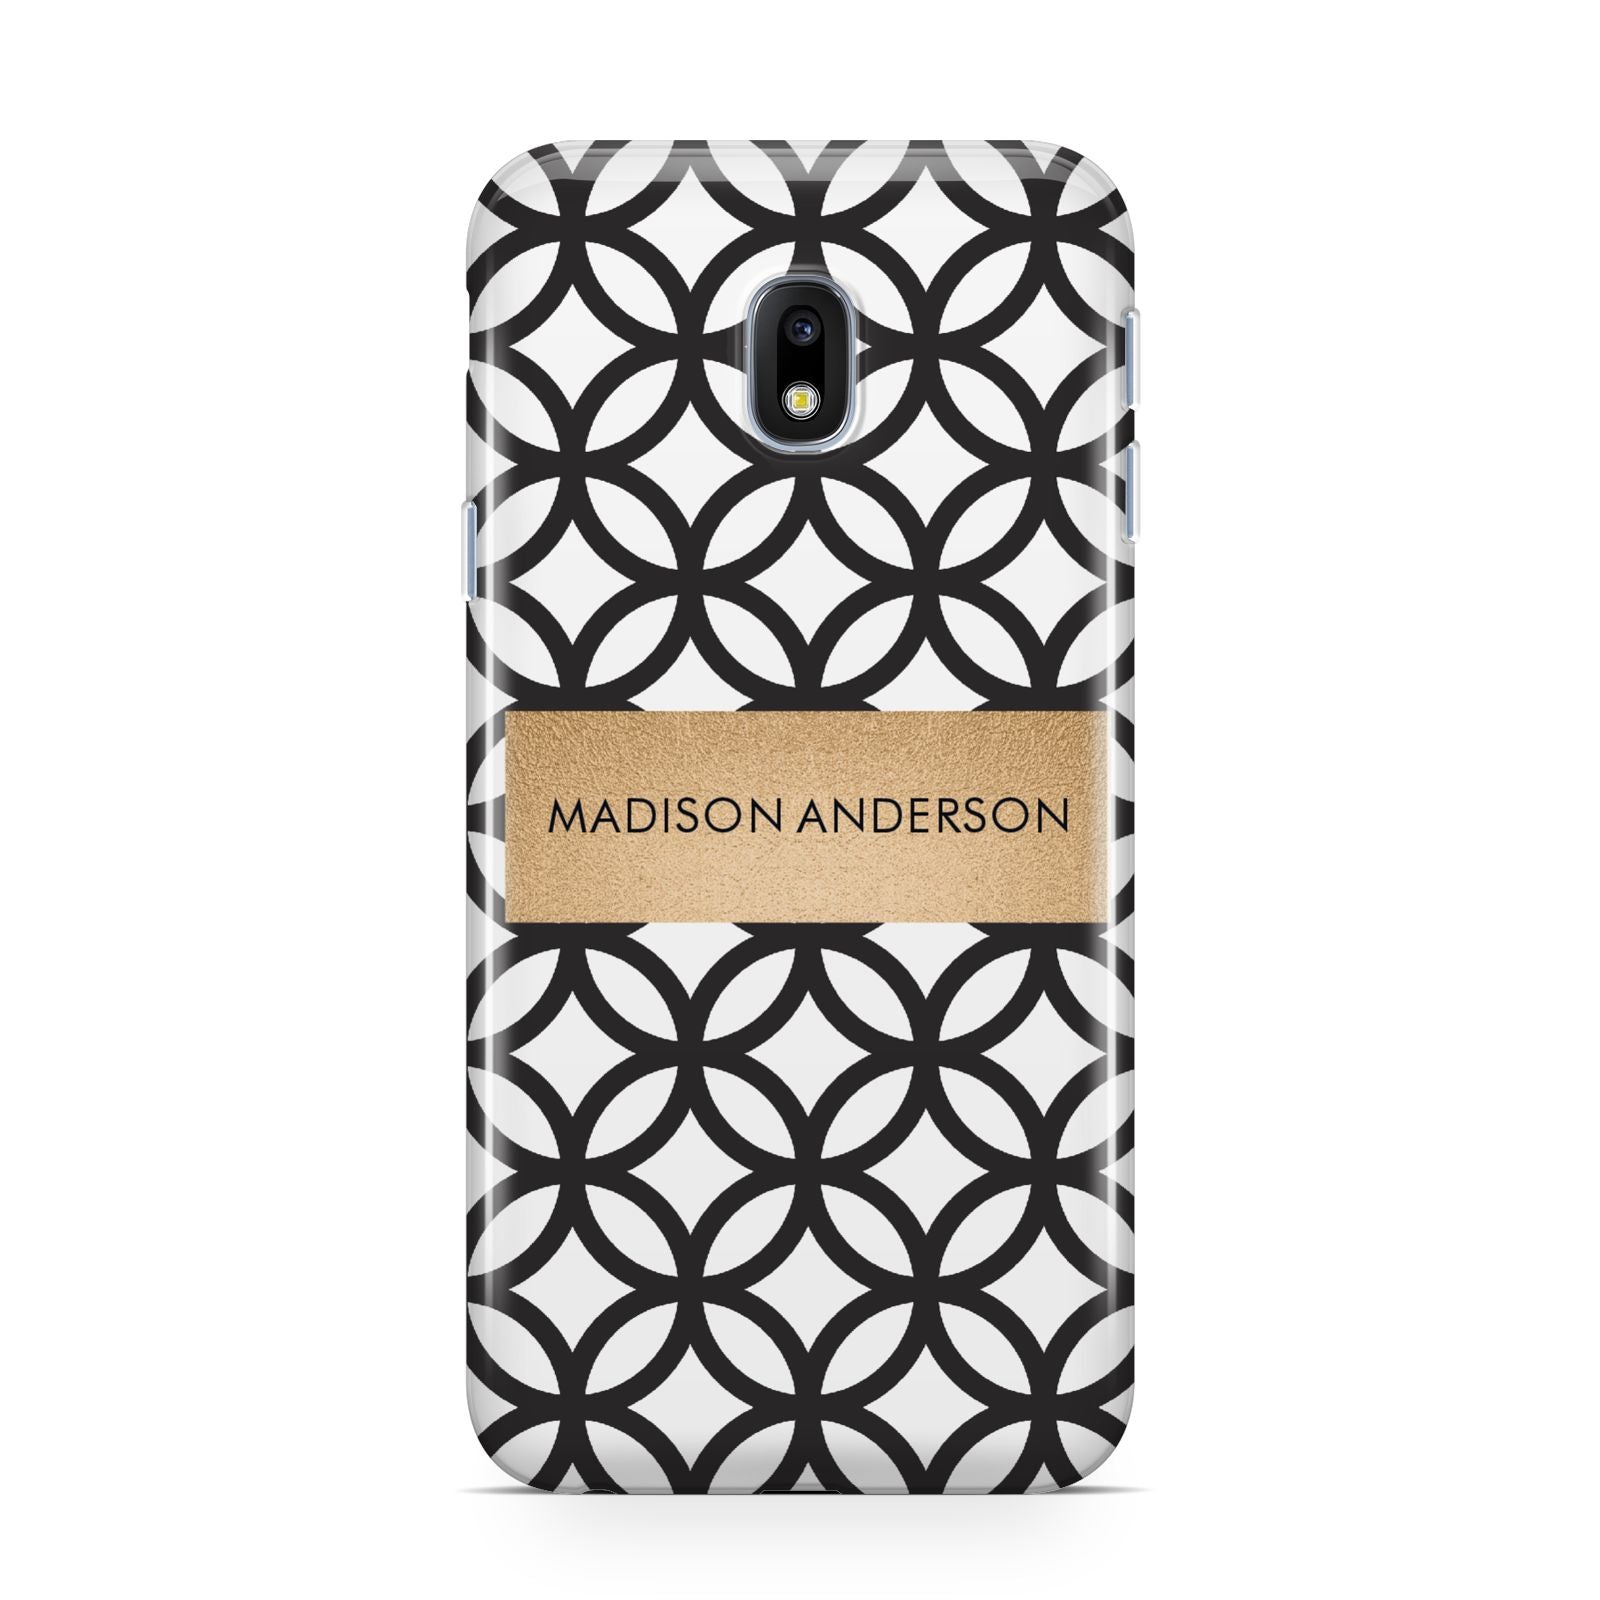 Personalised Geometric Name Or Initials Custom Samsung Galaxy J3 2017 Case